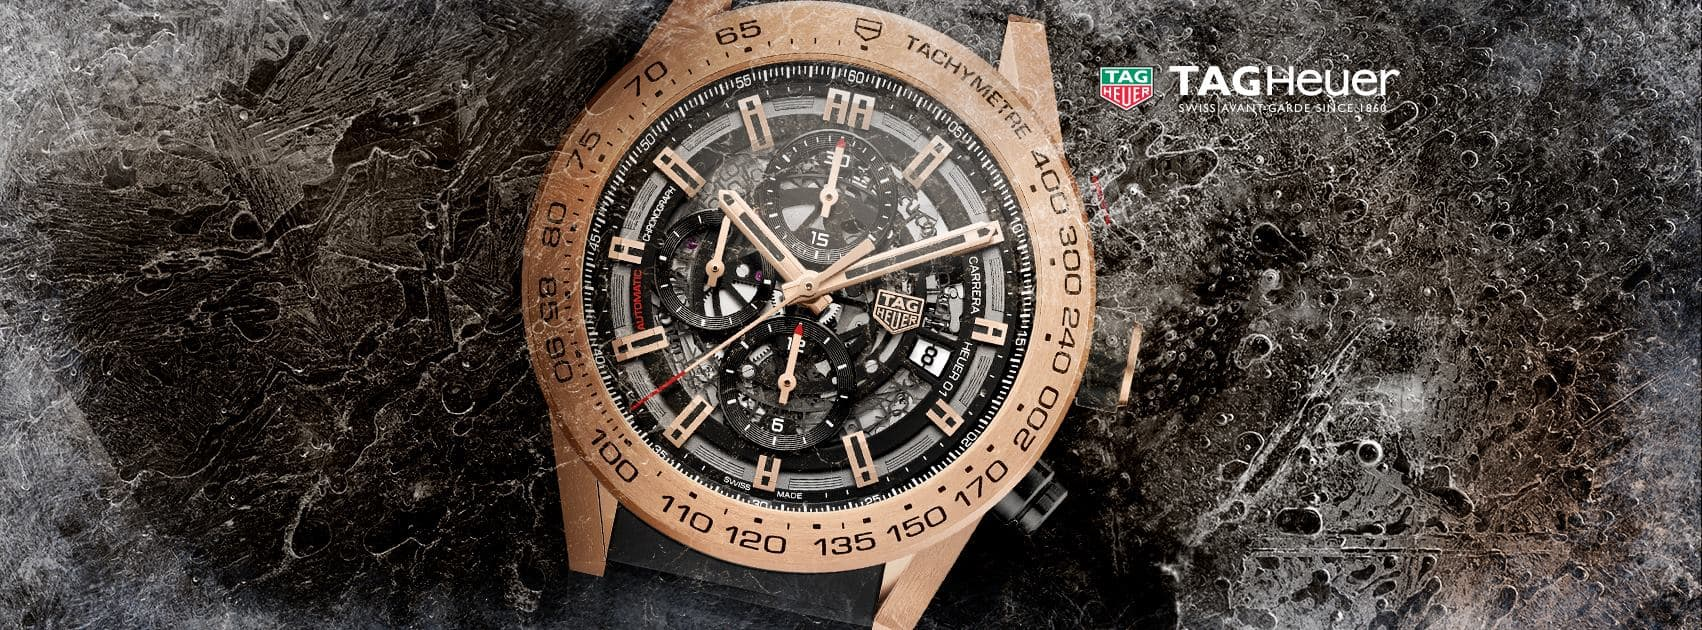 Haltom's Jewelers Tag Heuer - USD